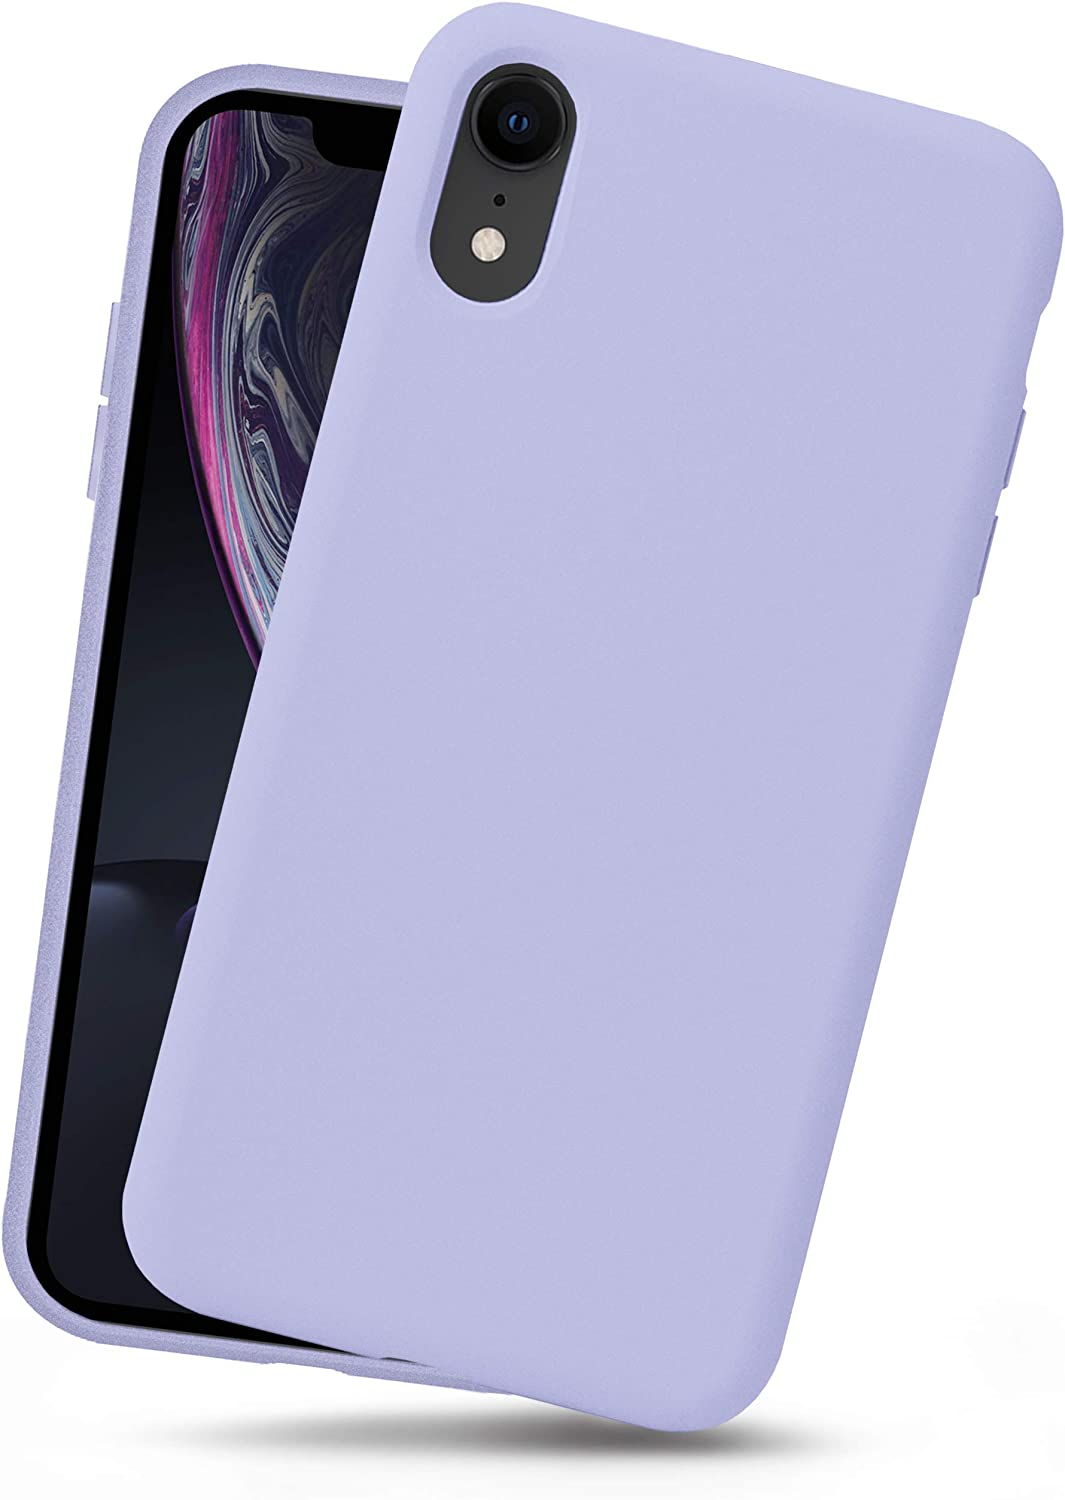 OCOMMO iPhone XR Silicone Case, Full Body Shockproof Protective Liquid Silicone XR Cases with Soft Microfiber Lining, Wireless Charge Pad Compatible, Pale Purple